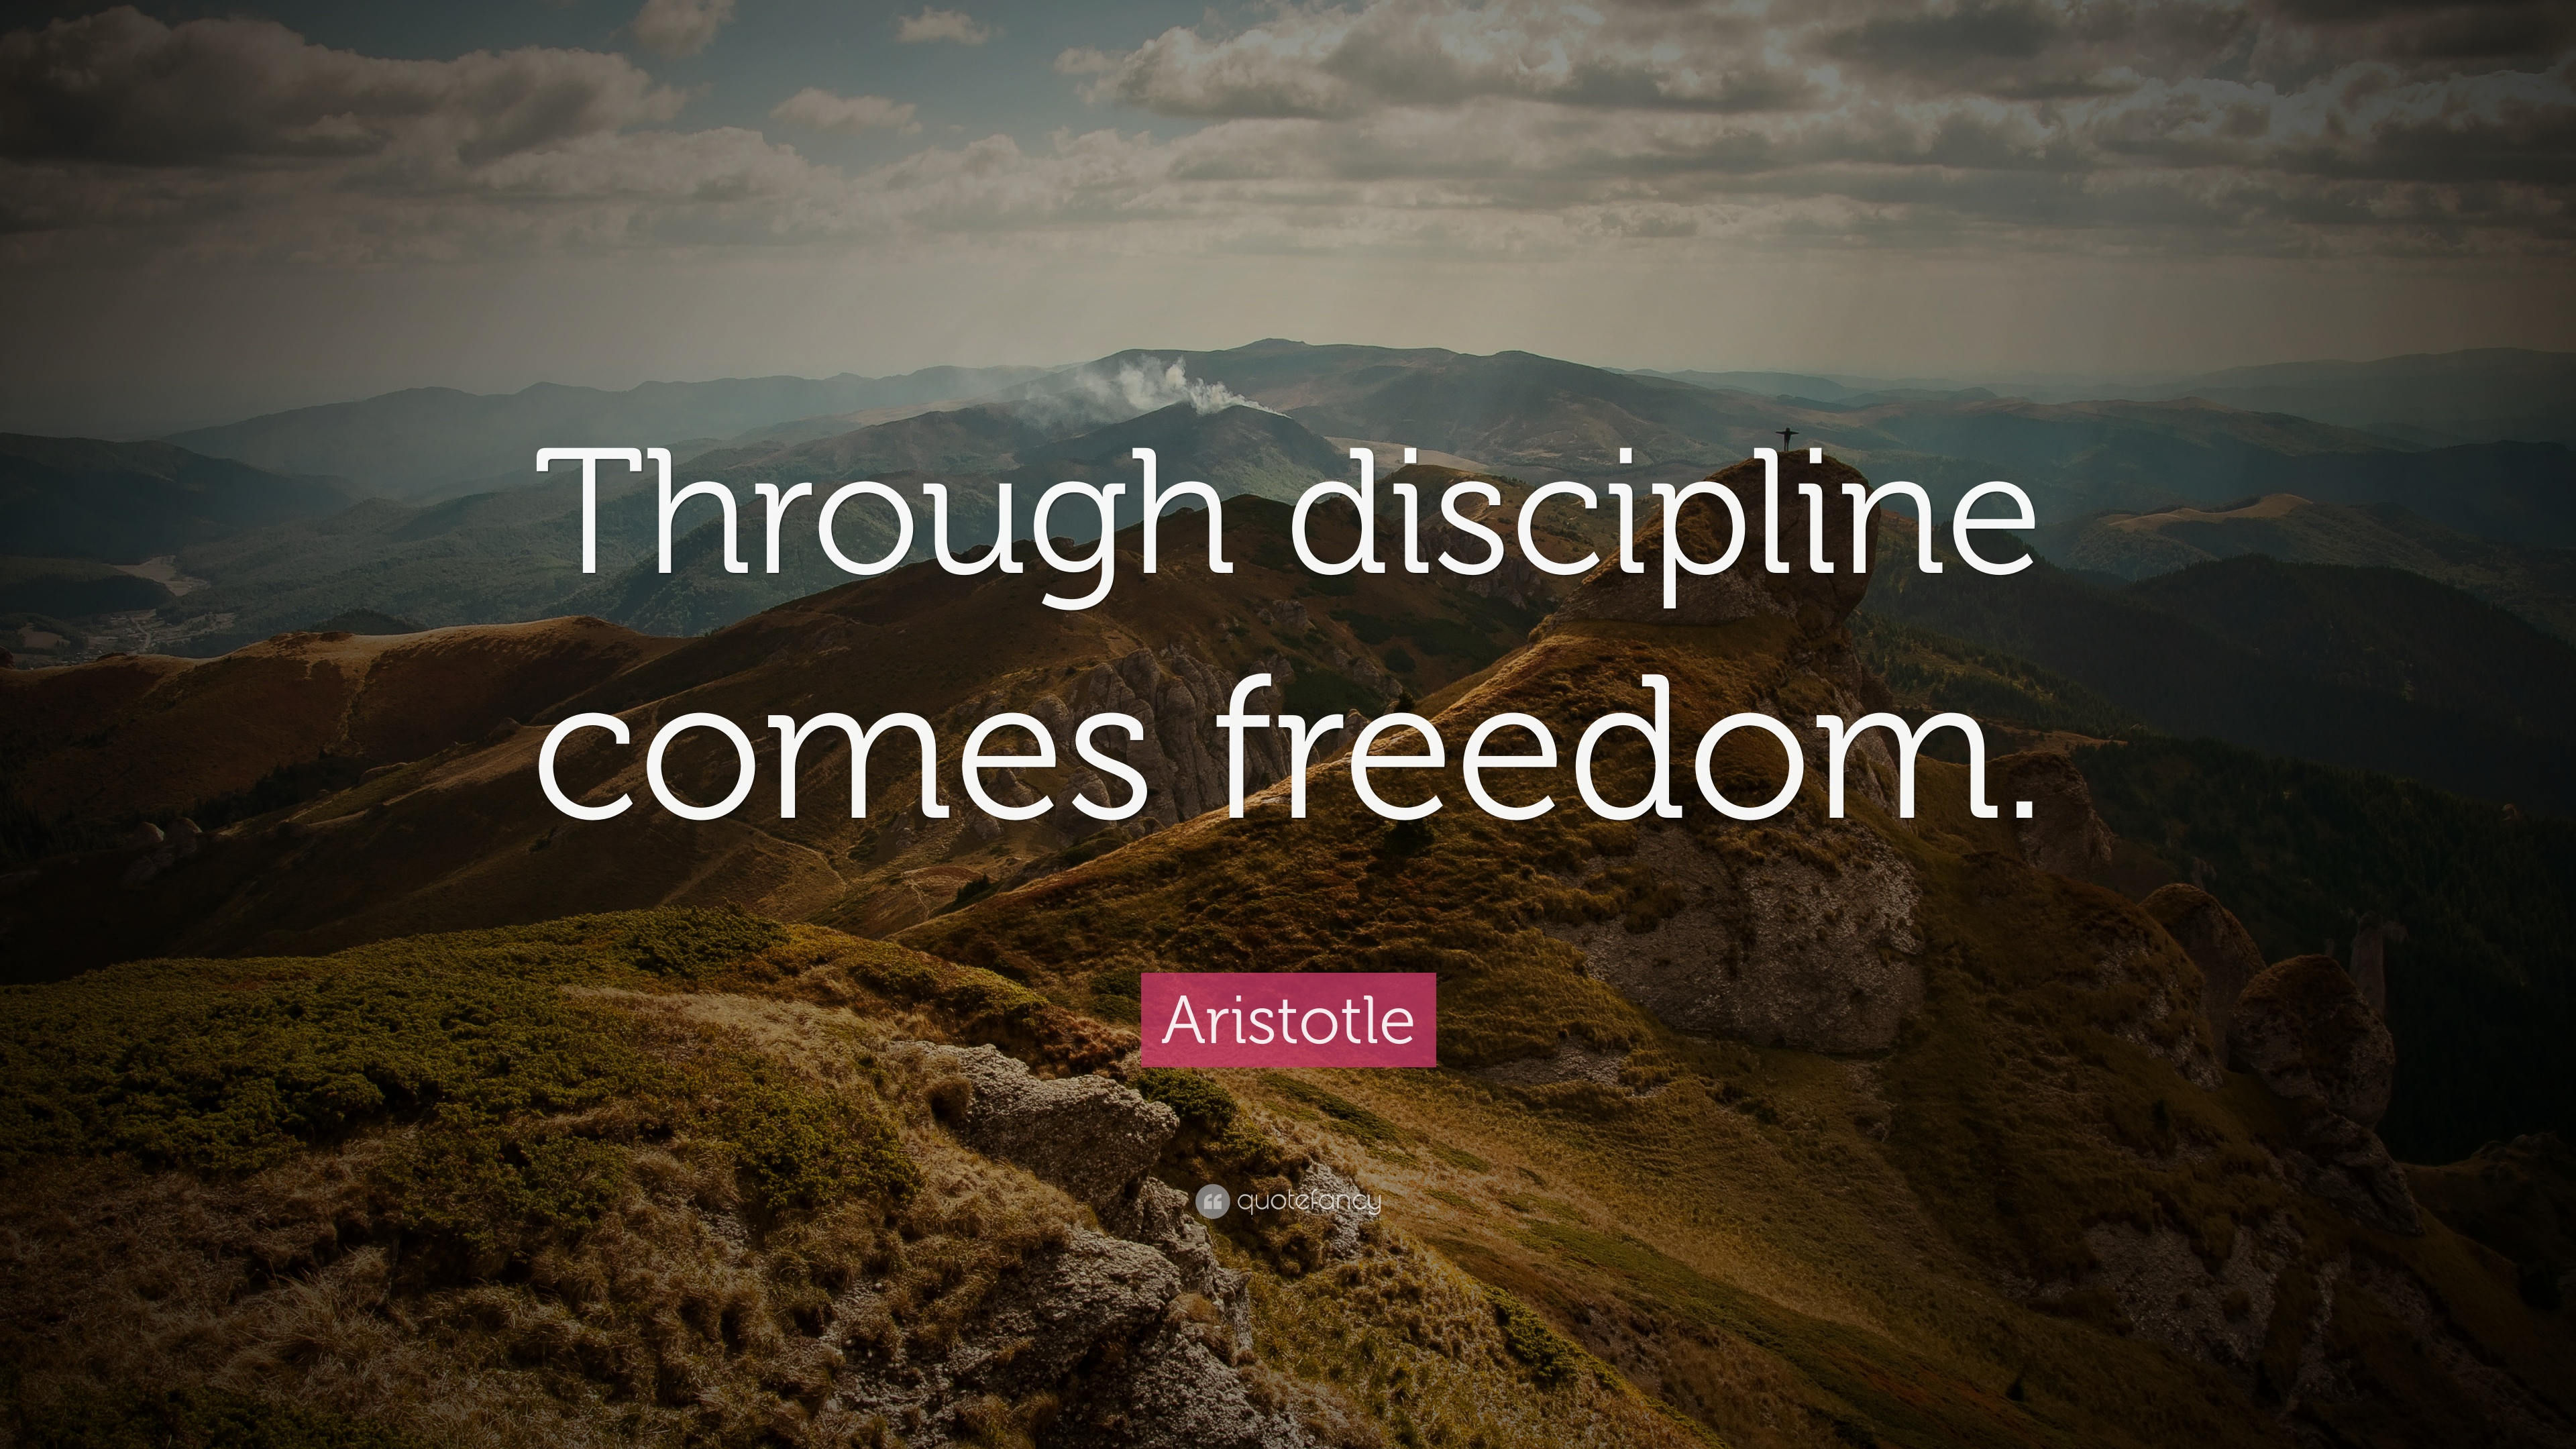 Business Quotes Wallpapers For Desktop Motivational Success Aristotle Quote Through Discipline Comes Freedom 33